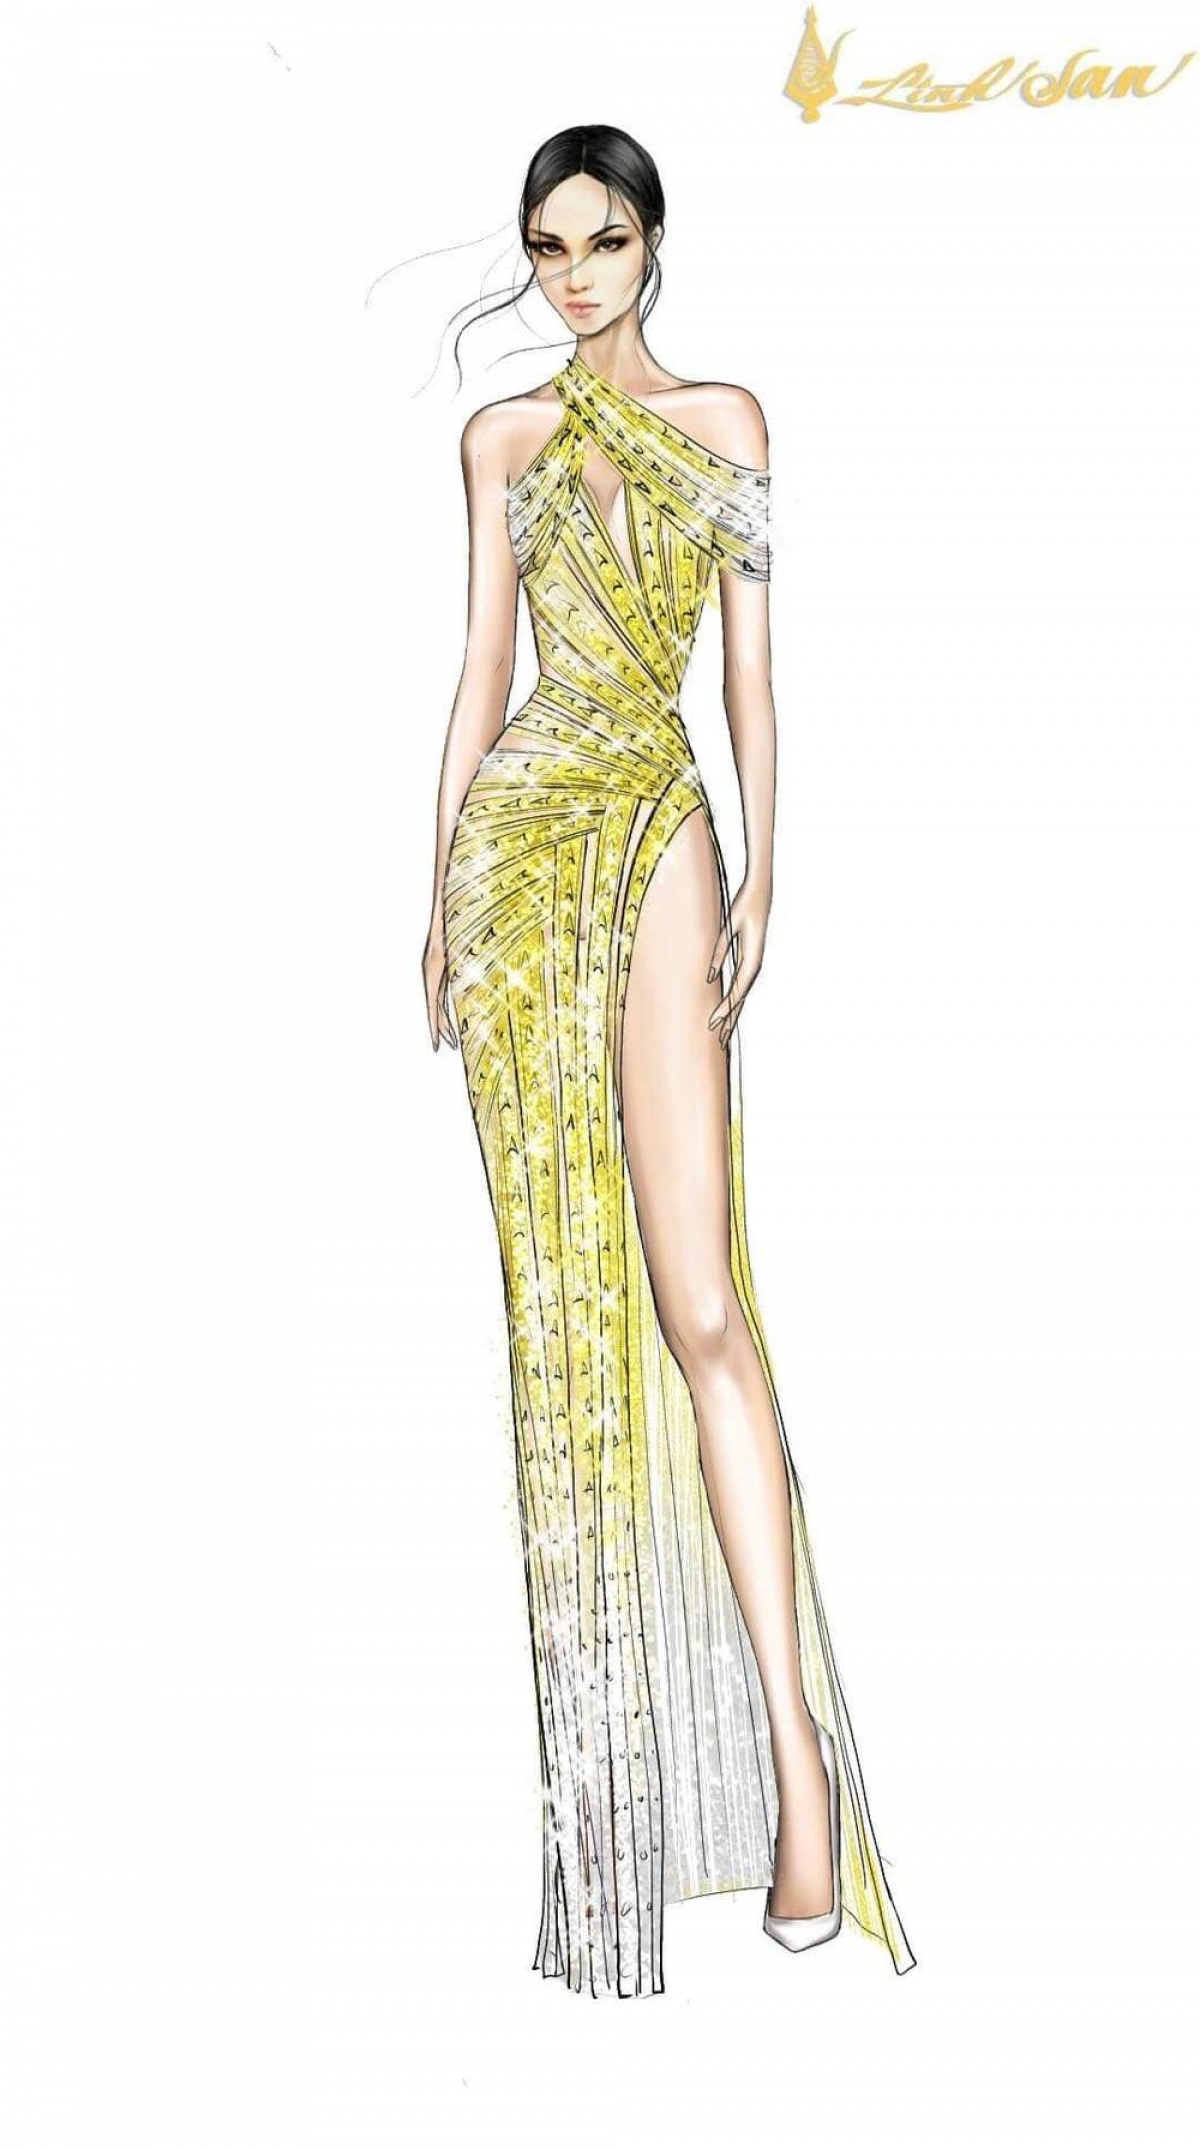 The yellow outfit will help her to stand out whilst on stage.